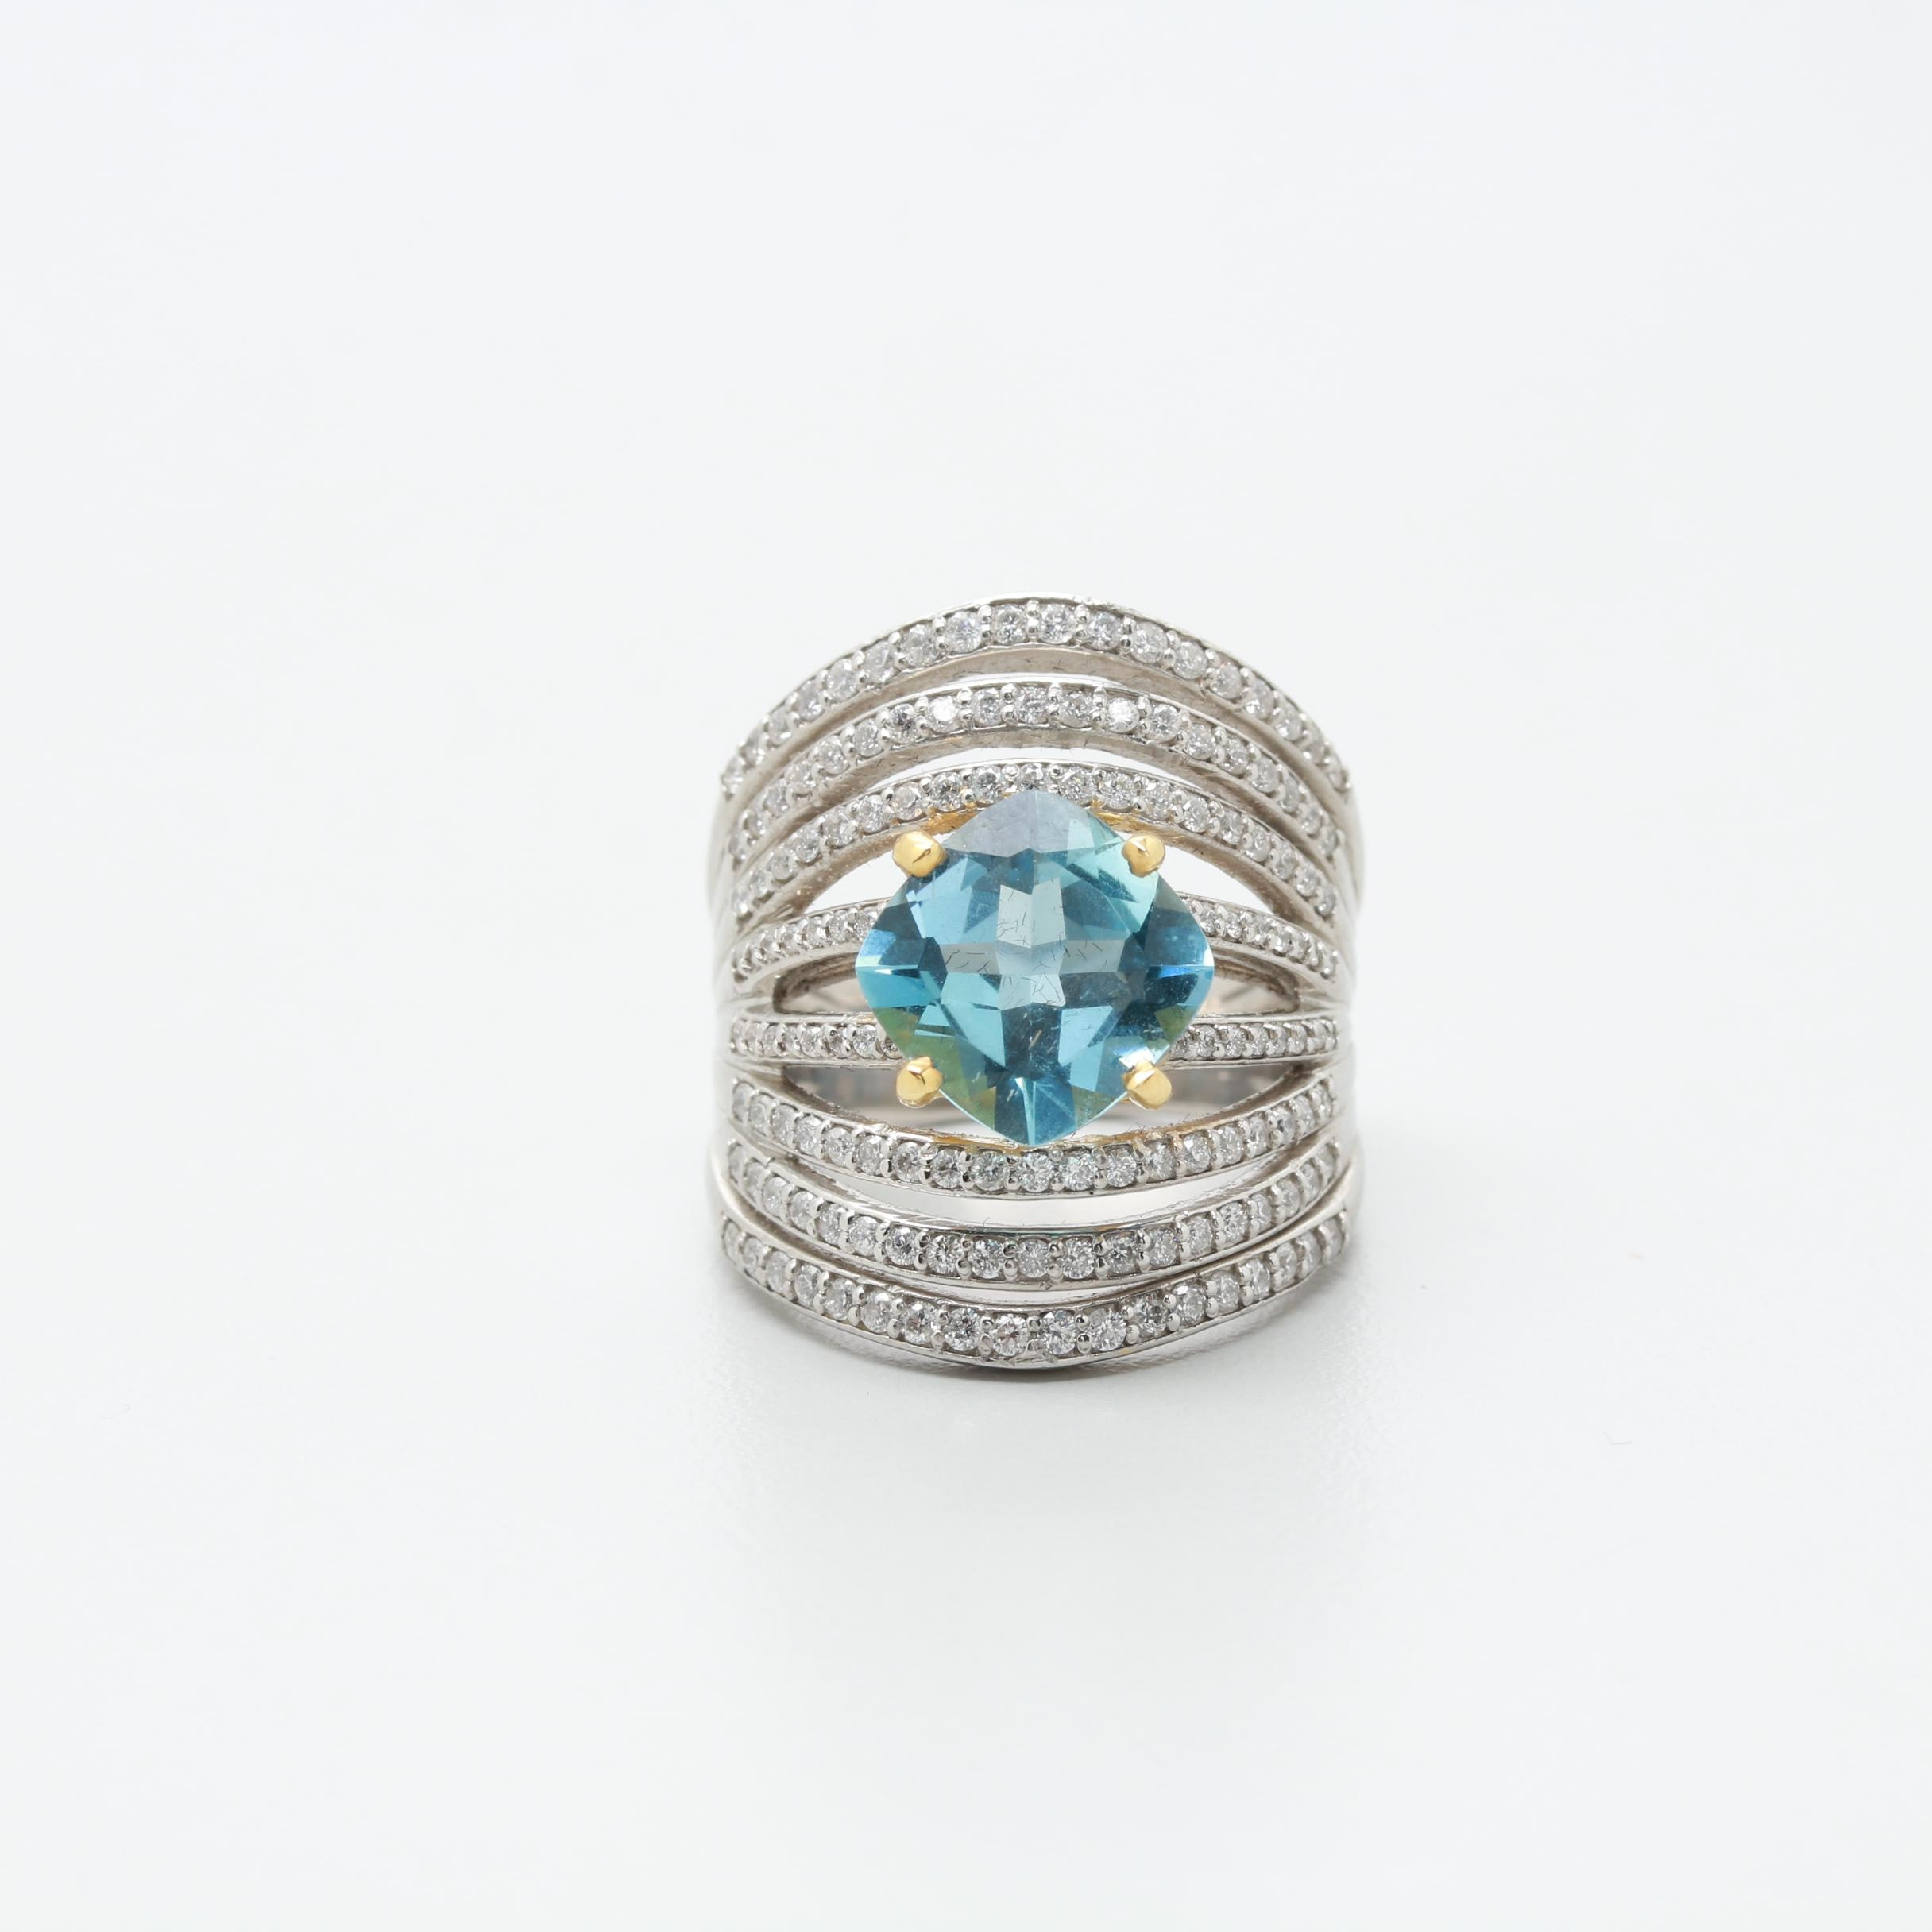 Platinum 2.40 CT Aquamarine and 1.05 CTW Diamond Ring with 14K Accent